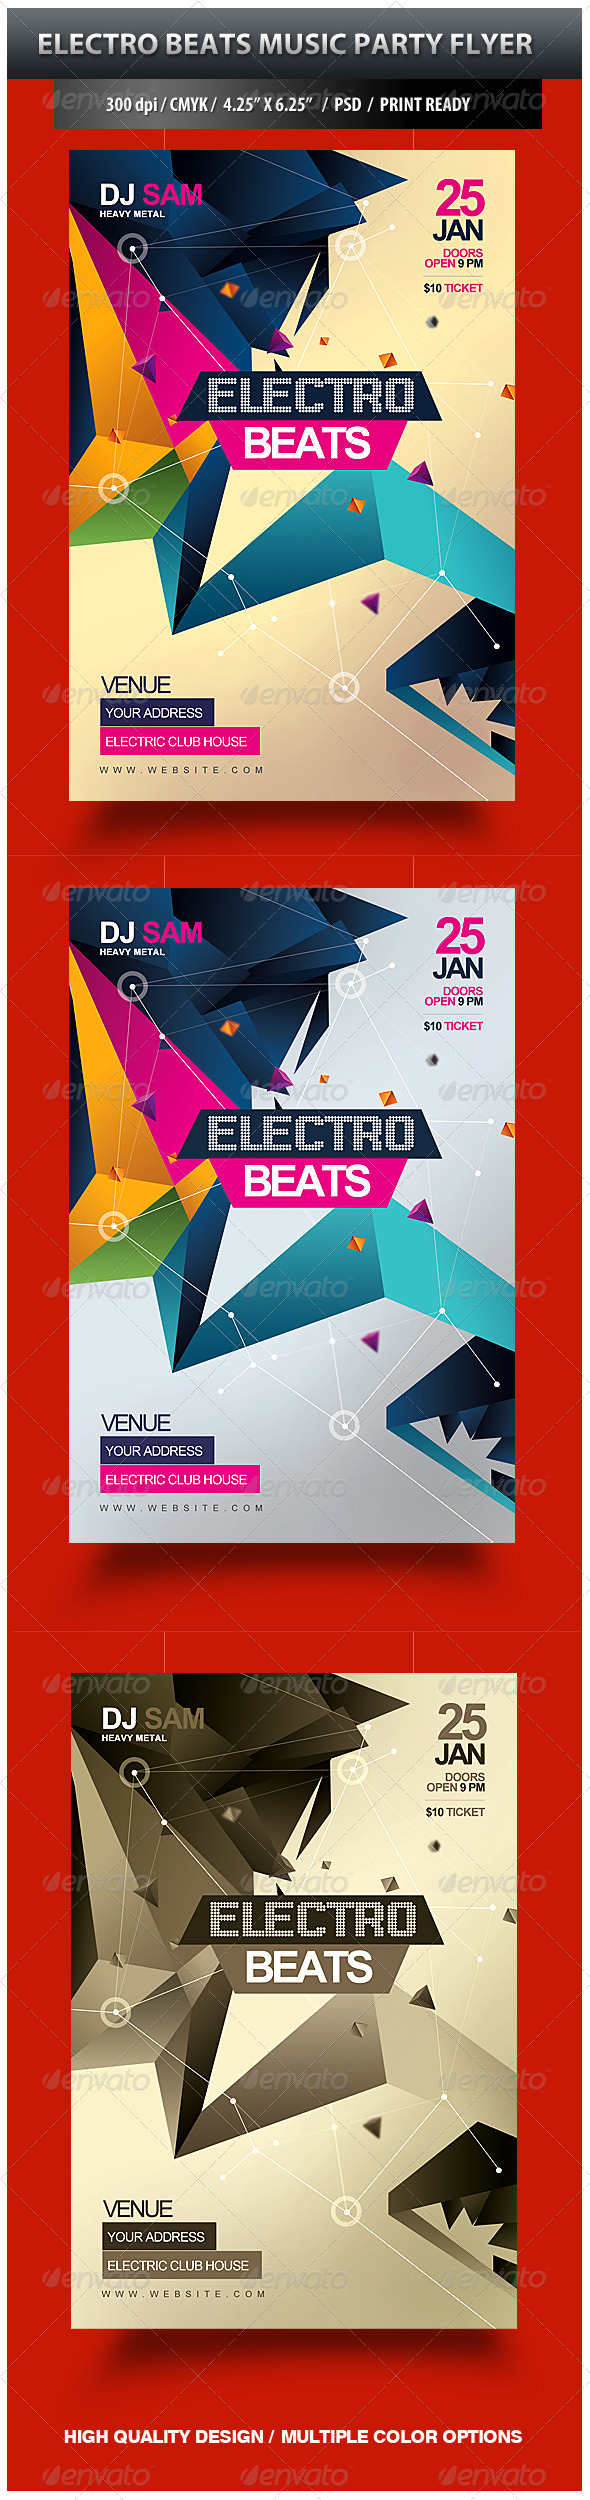 Electro Beats Music Party Flyer - Clubs &amp; Parties Events